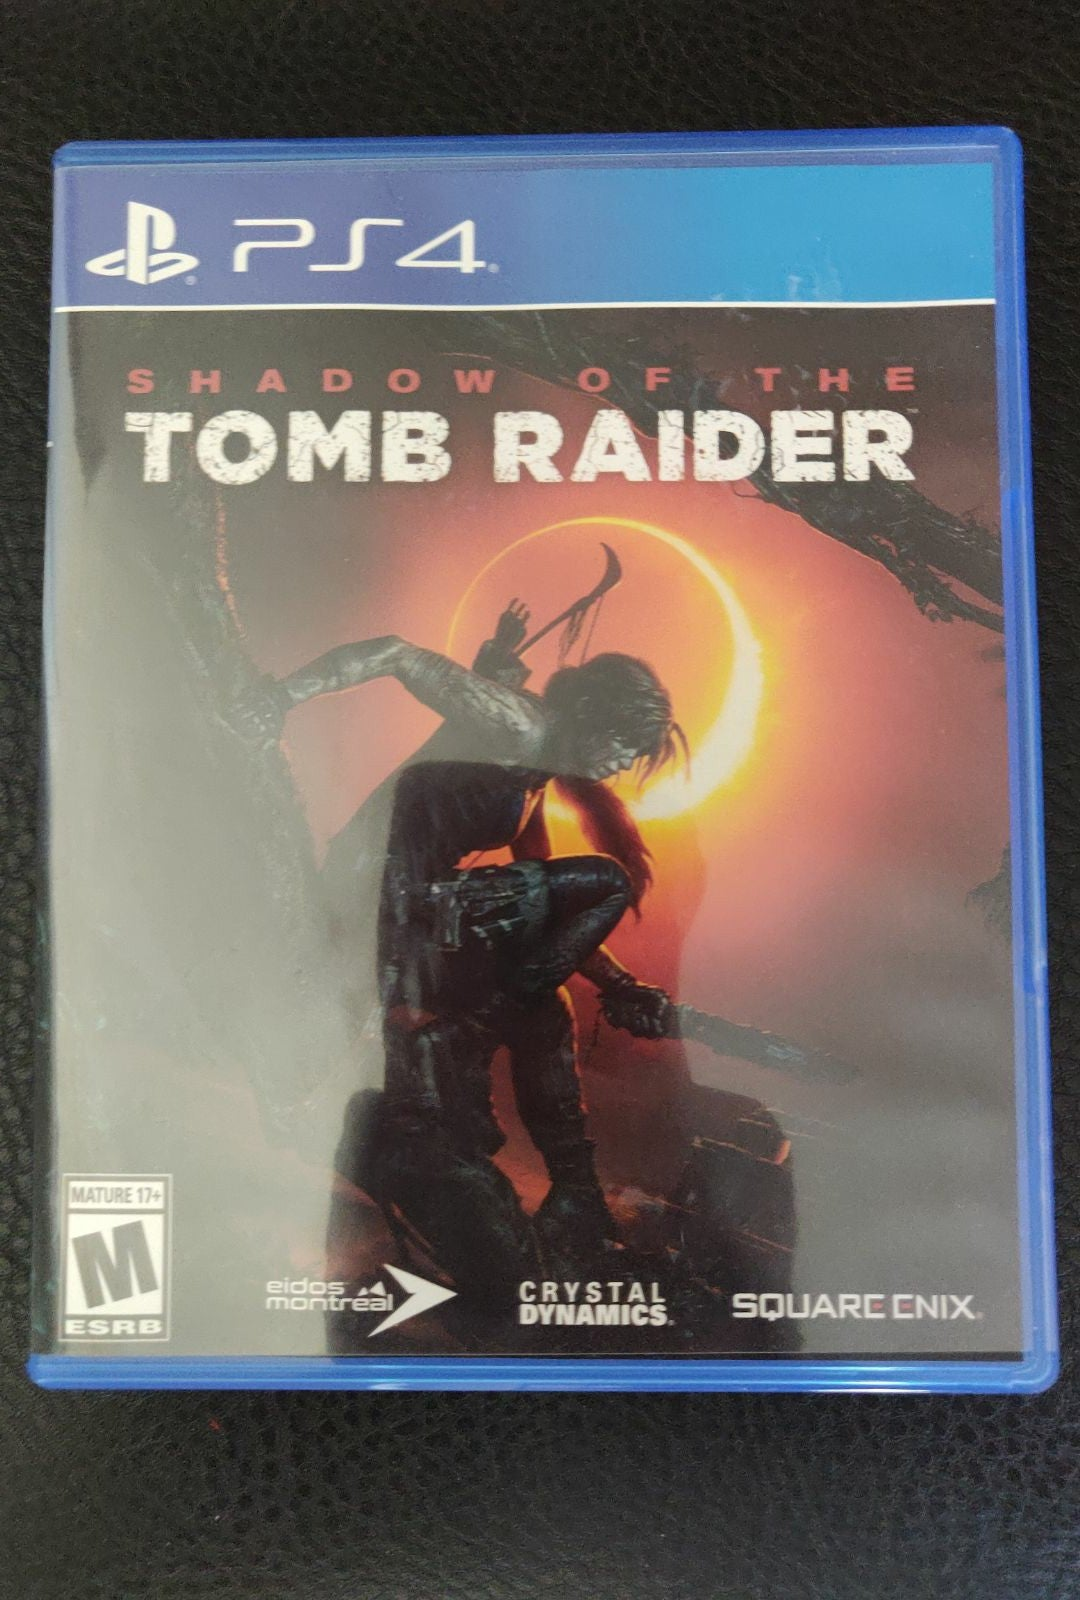 Shadow of the Tomb Raider on Playstation